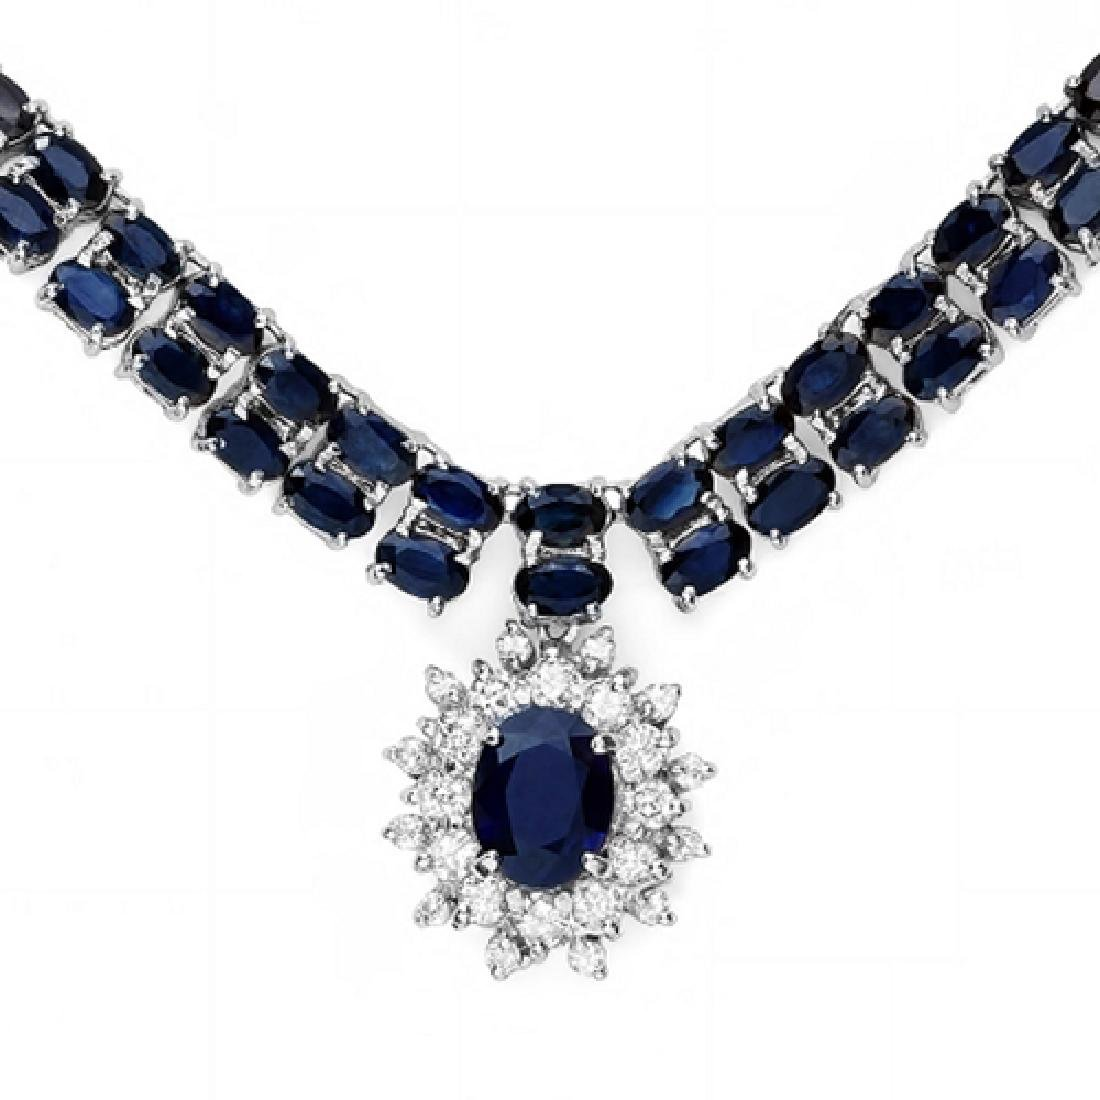 59.23 Carat Natural Sapphire 18K Solid White Gold